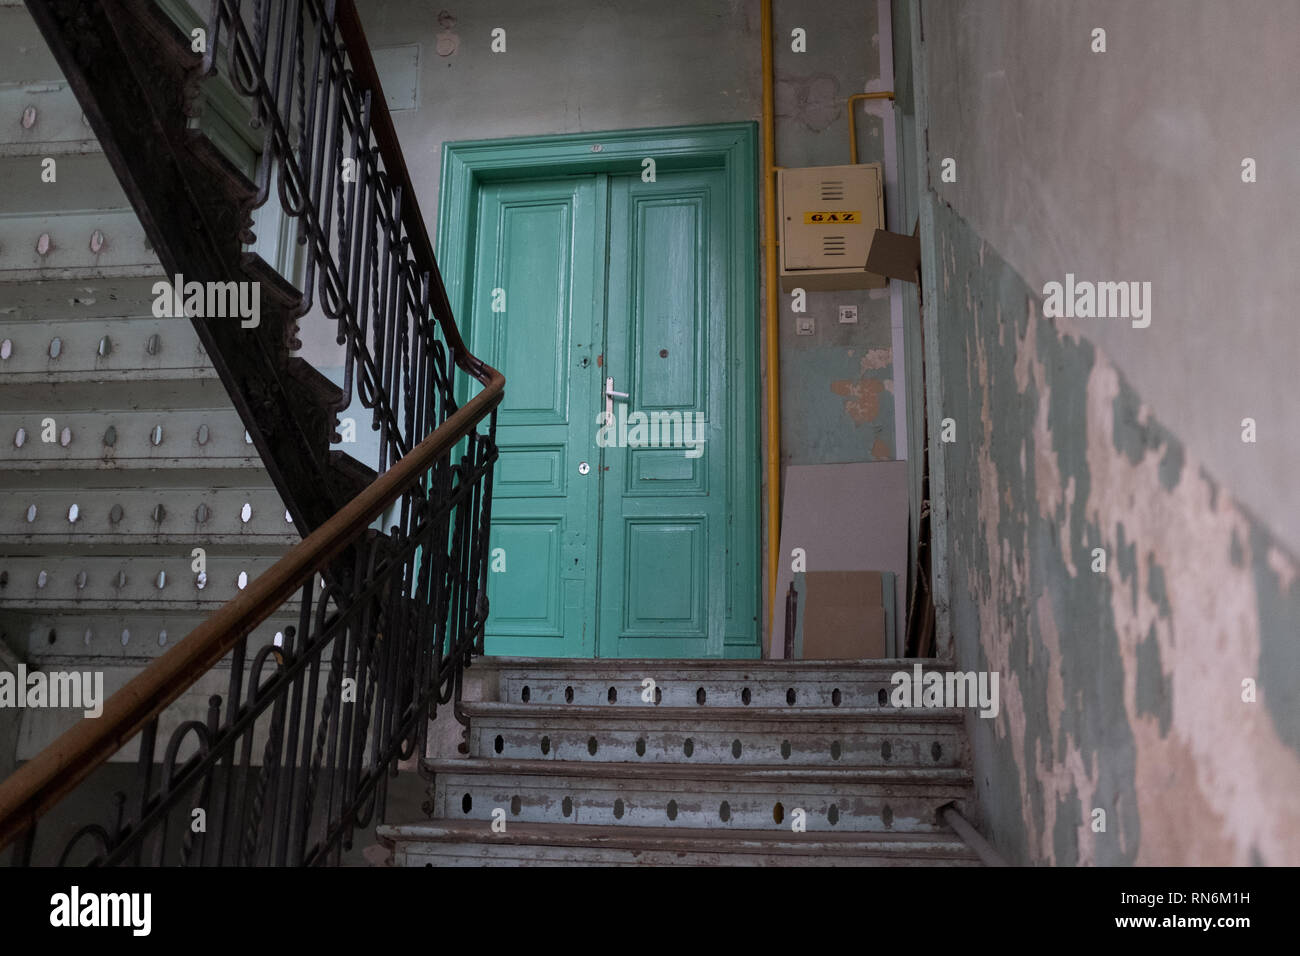 Period wooden staircase for an apartment block leading to a green door - Stock Image